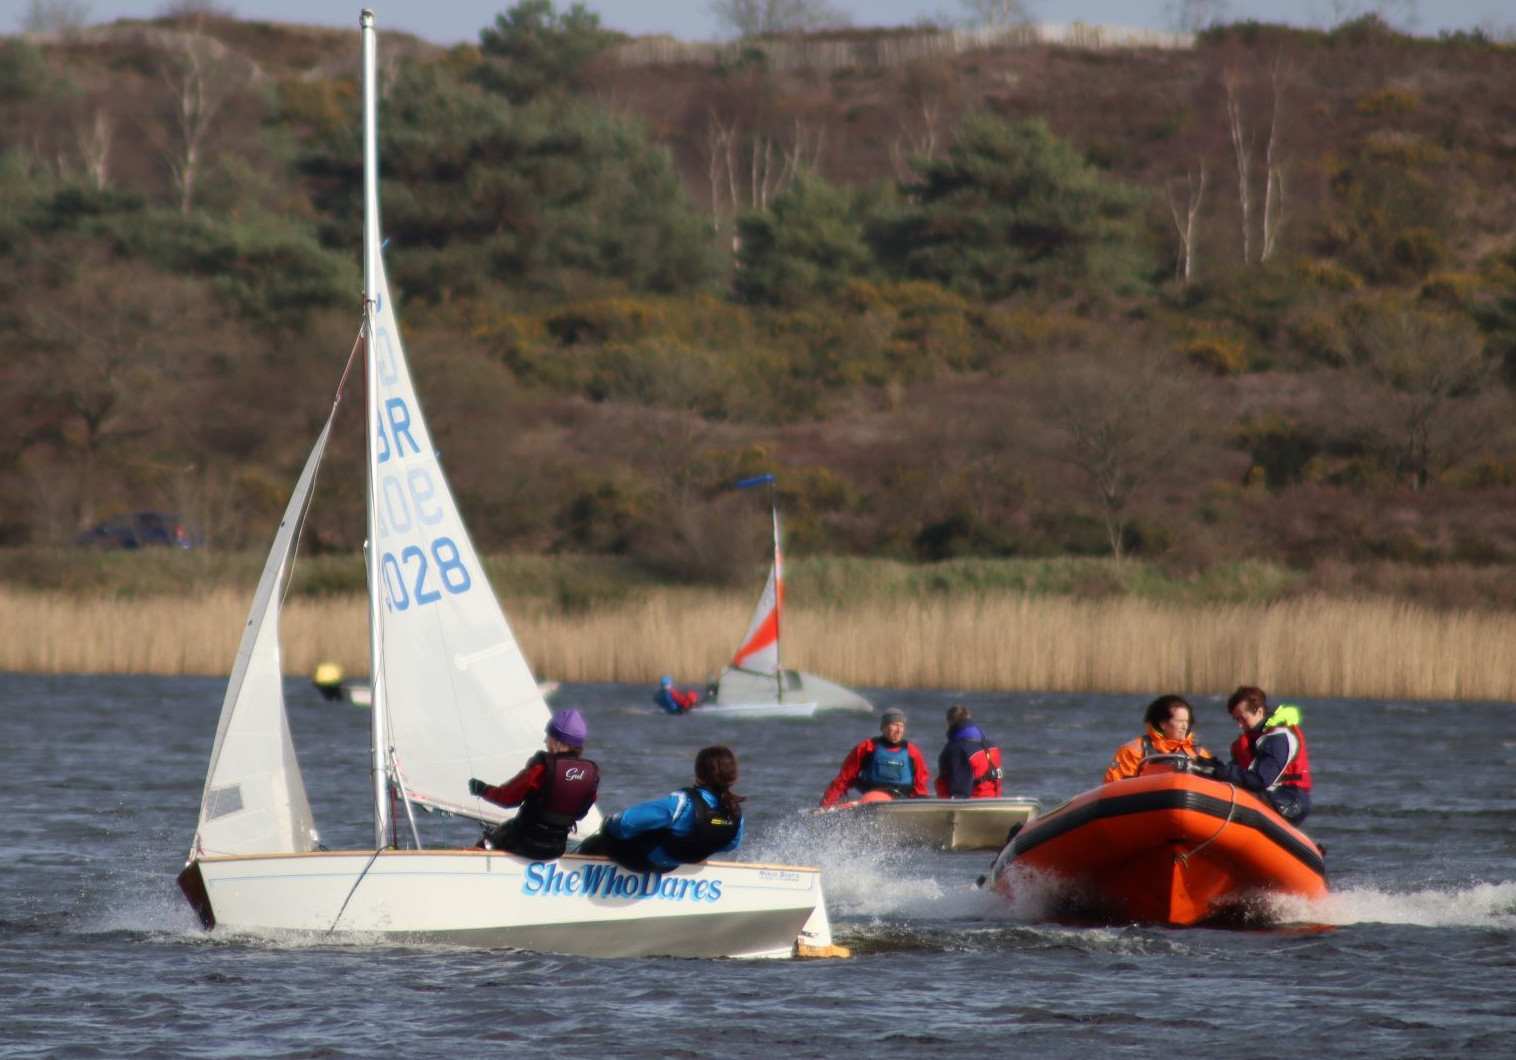 Cadet_sailing_-_22_Feb_20_cropped.jpg